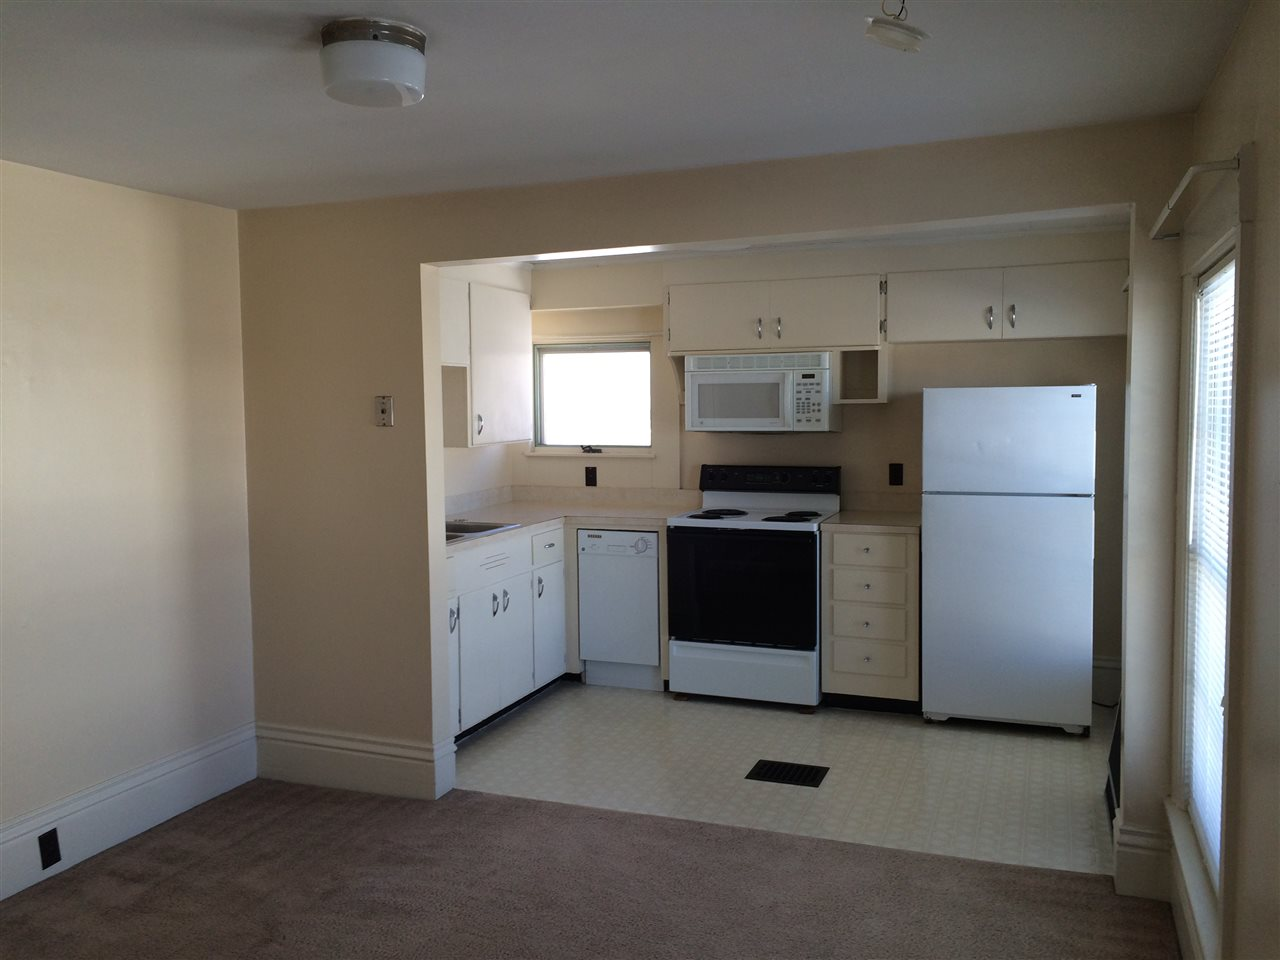 CONCORD NH Multi-Family for rent $Multi-Family For Lease: $1,300 with Lease Term